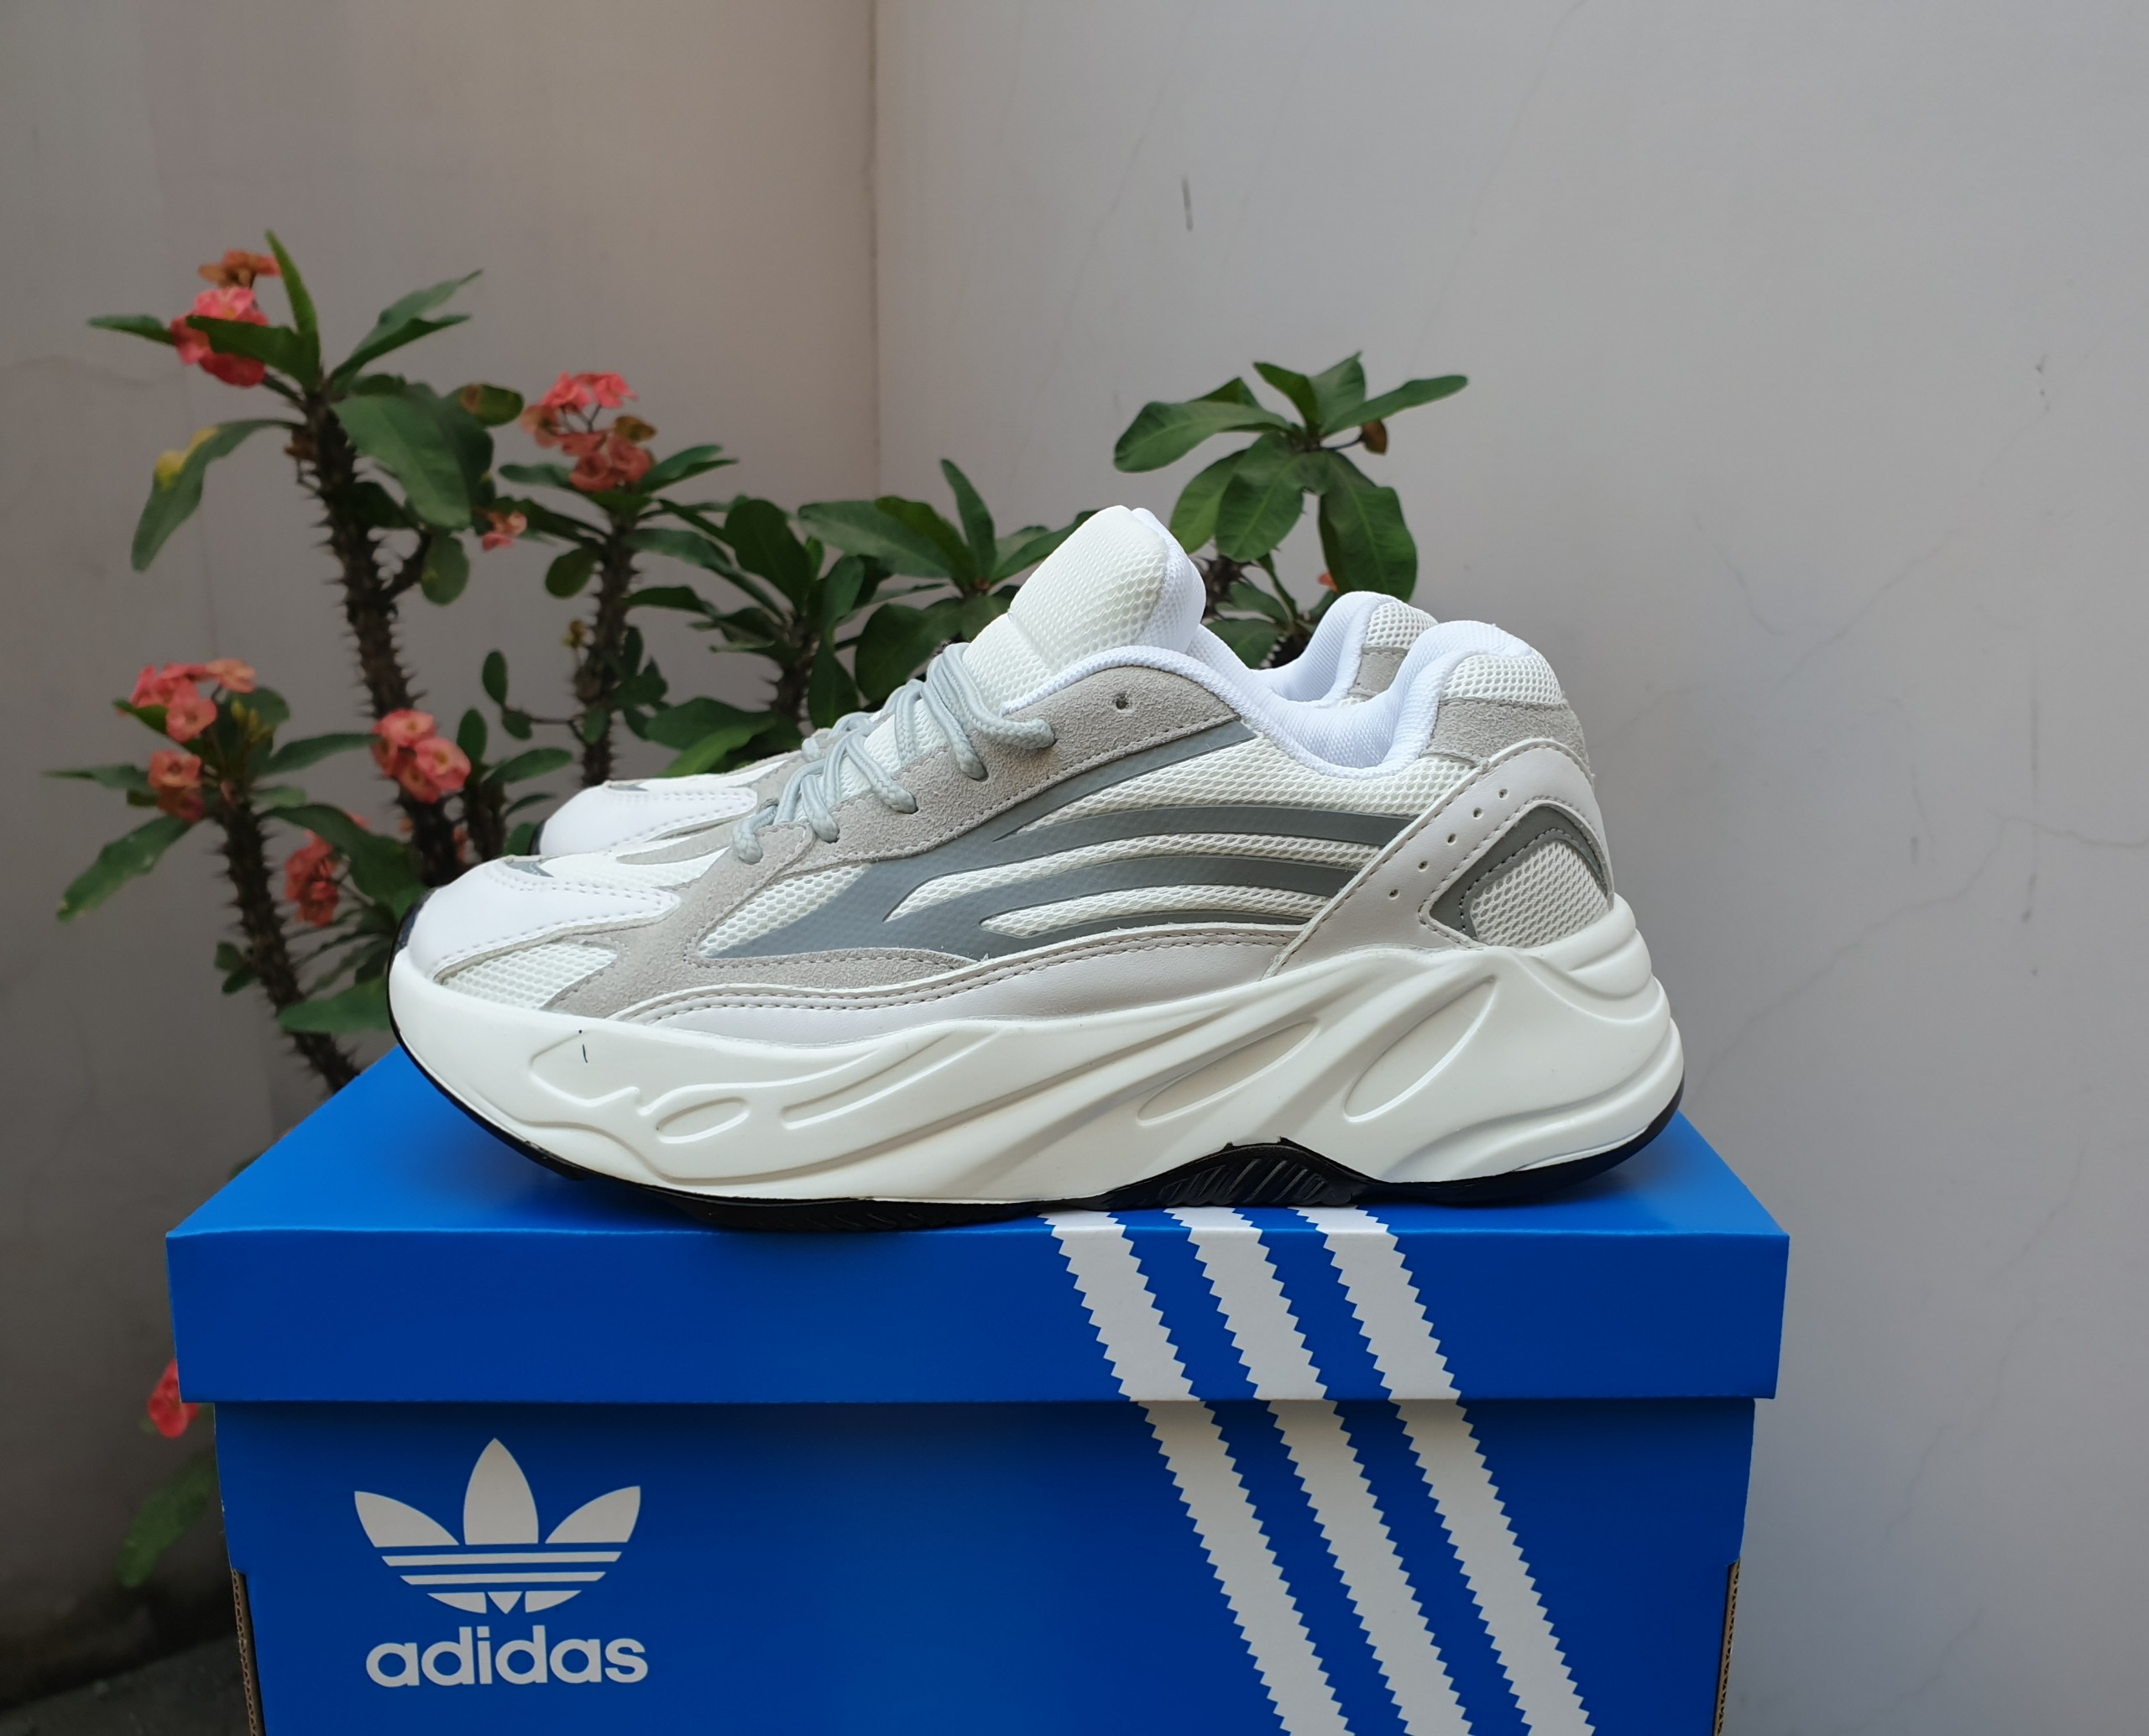 yeezy 700 static f1 buy clothes shoes